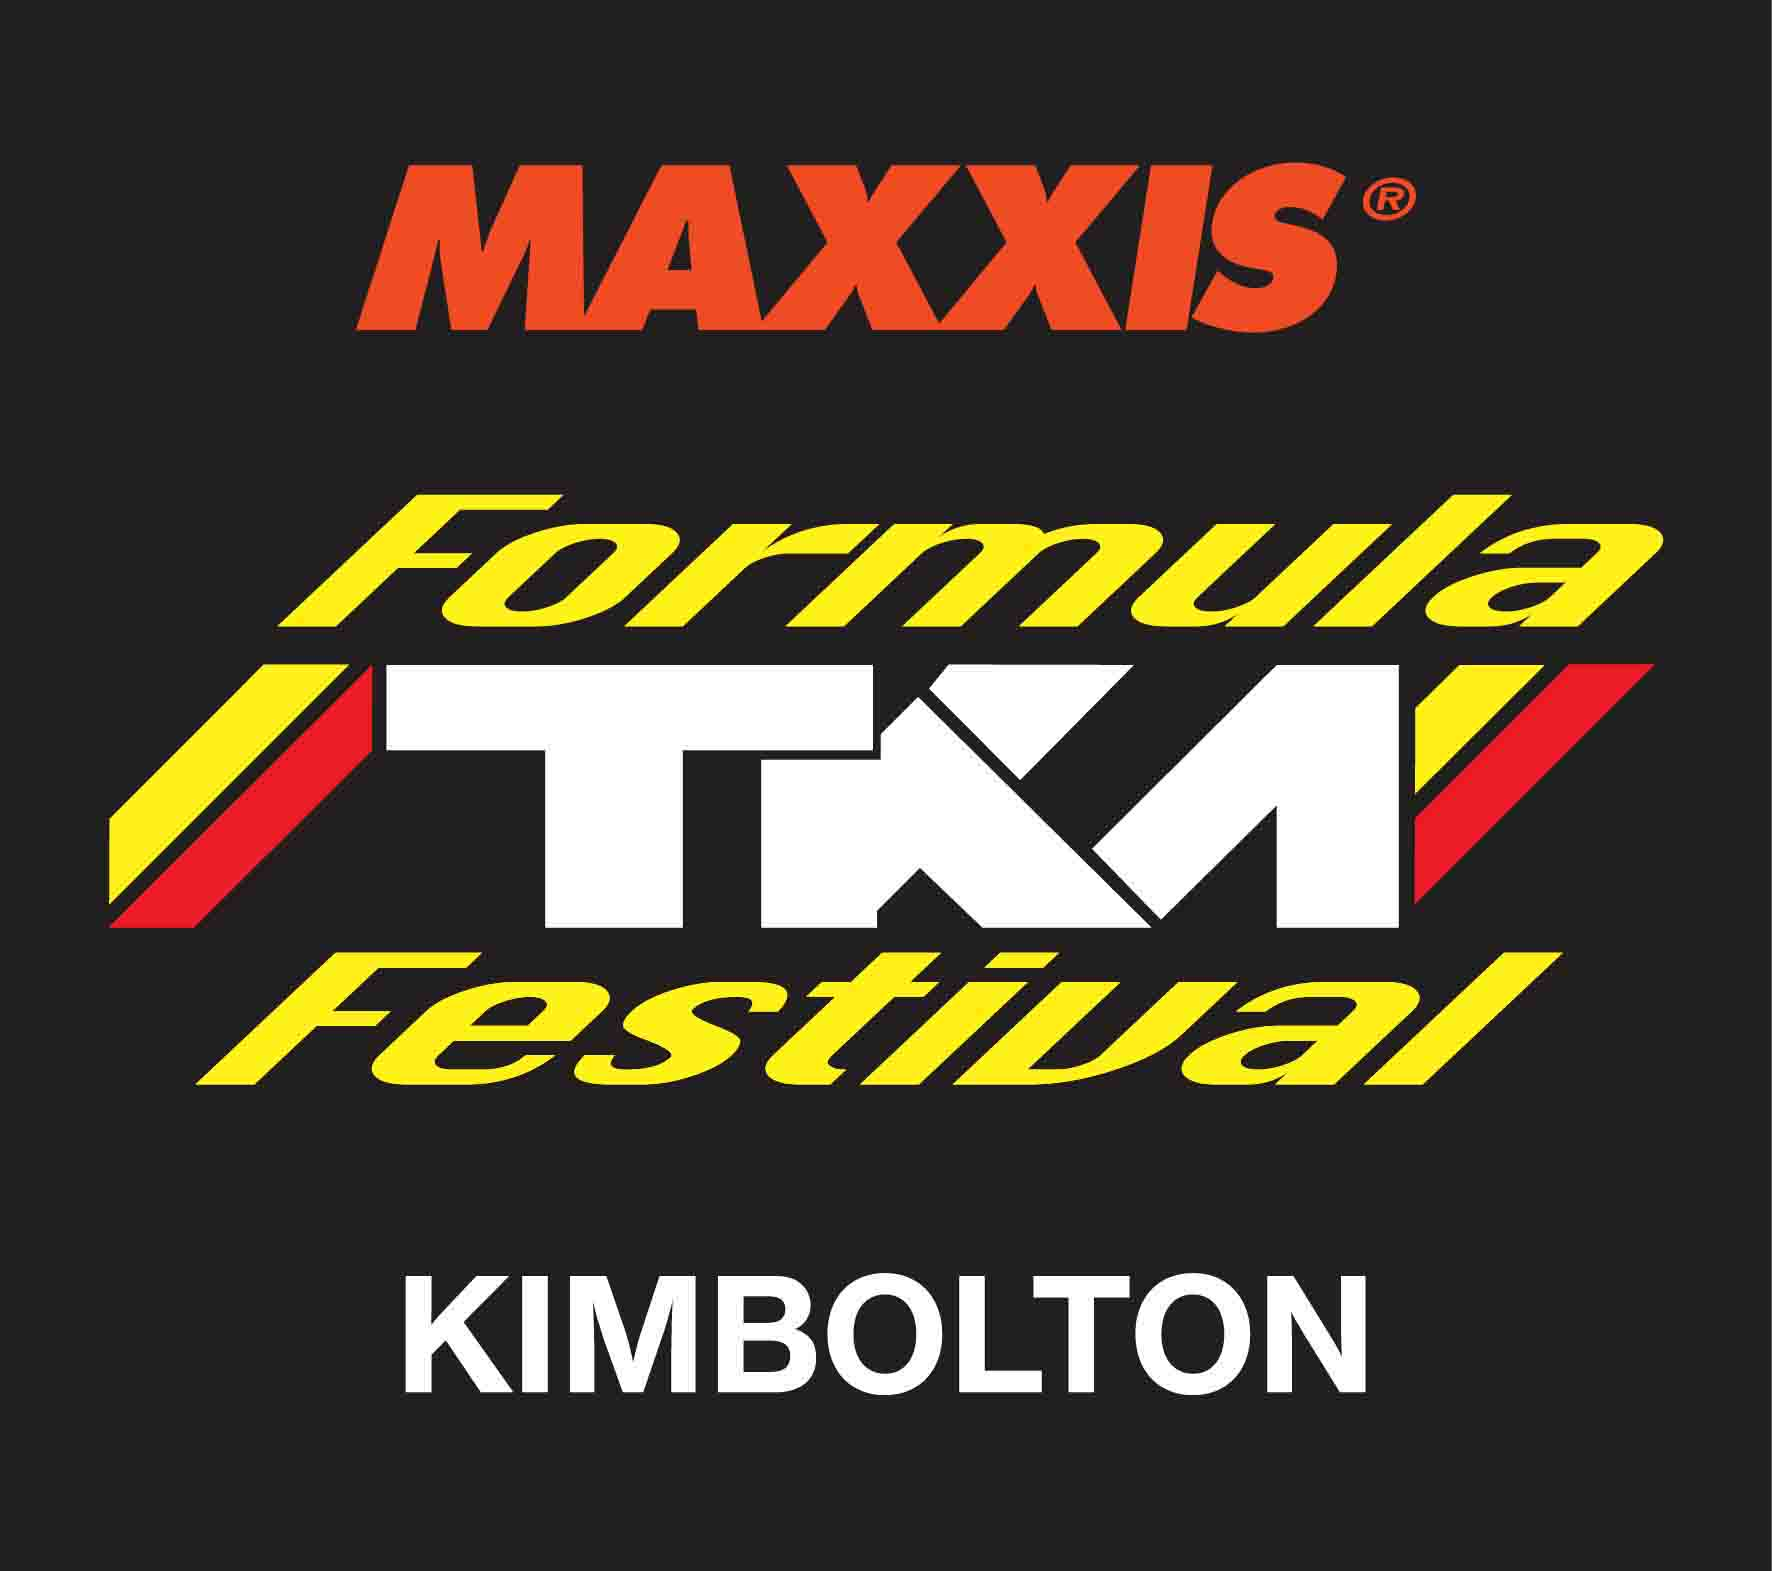 MAXXIS Clubman Festival Tyres